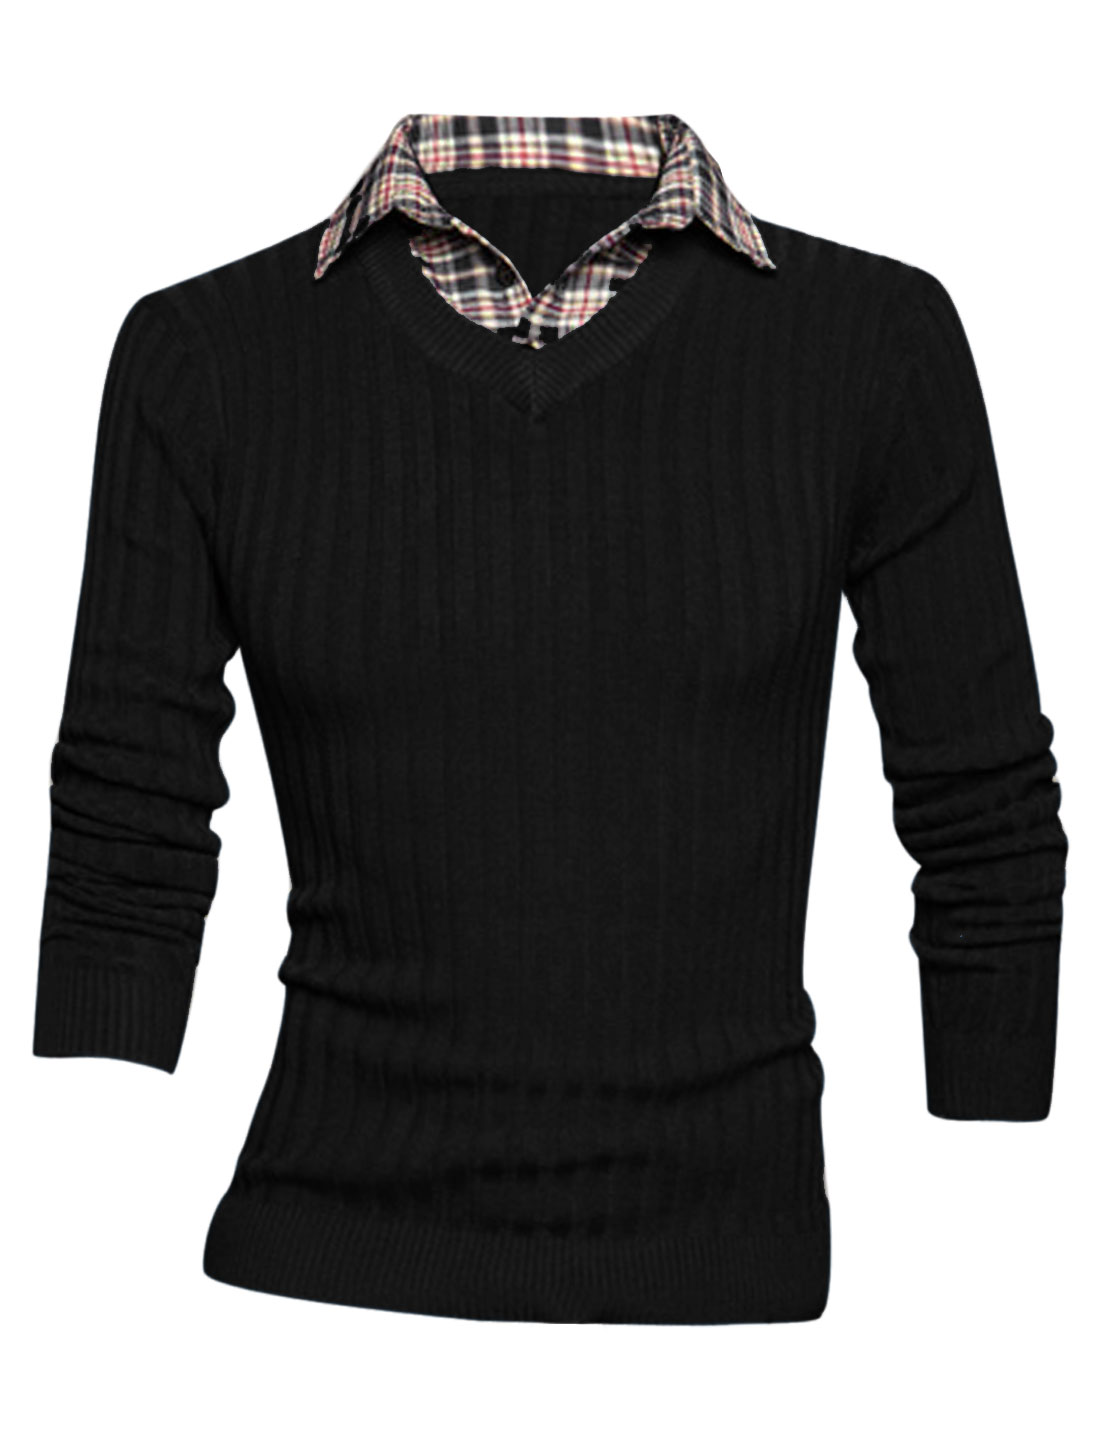 Men Long Sleeve Layered Designs Stitched Design Soft Knit Shirt Black M